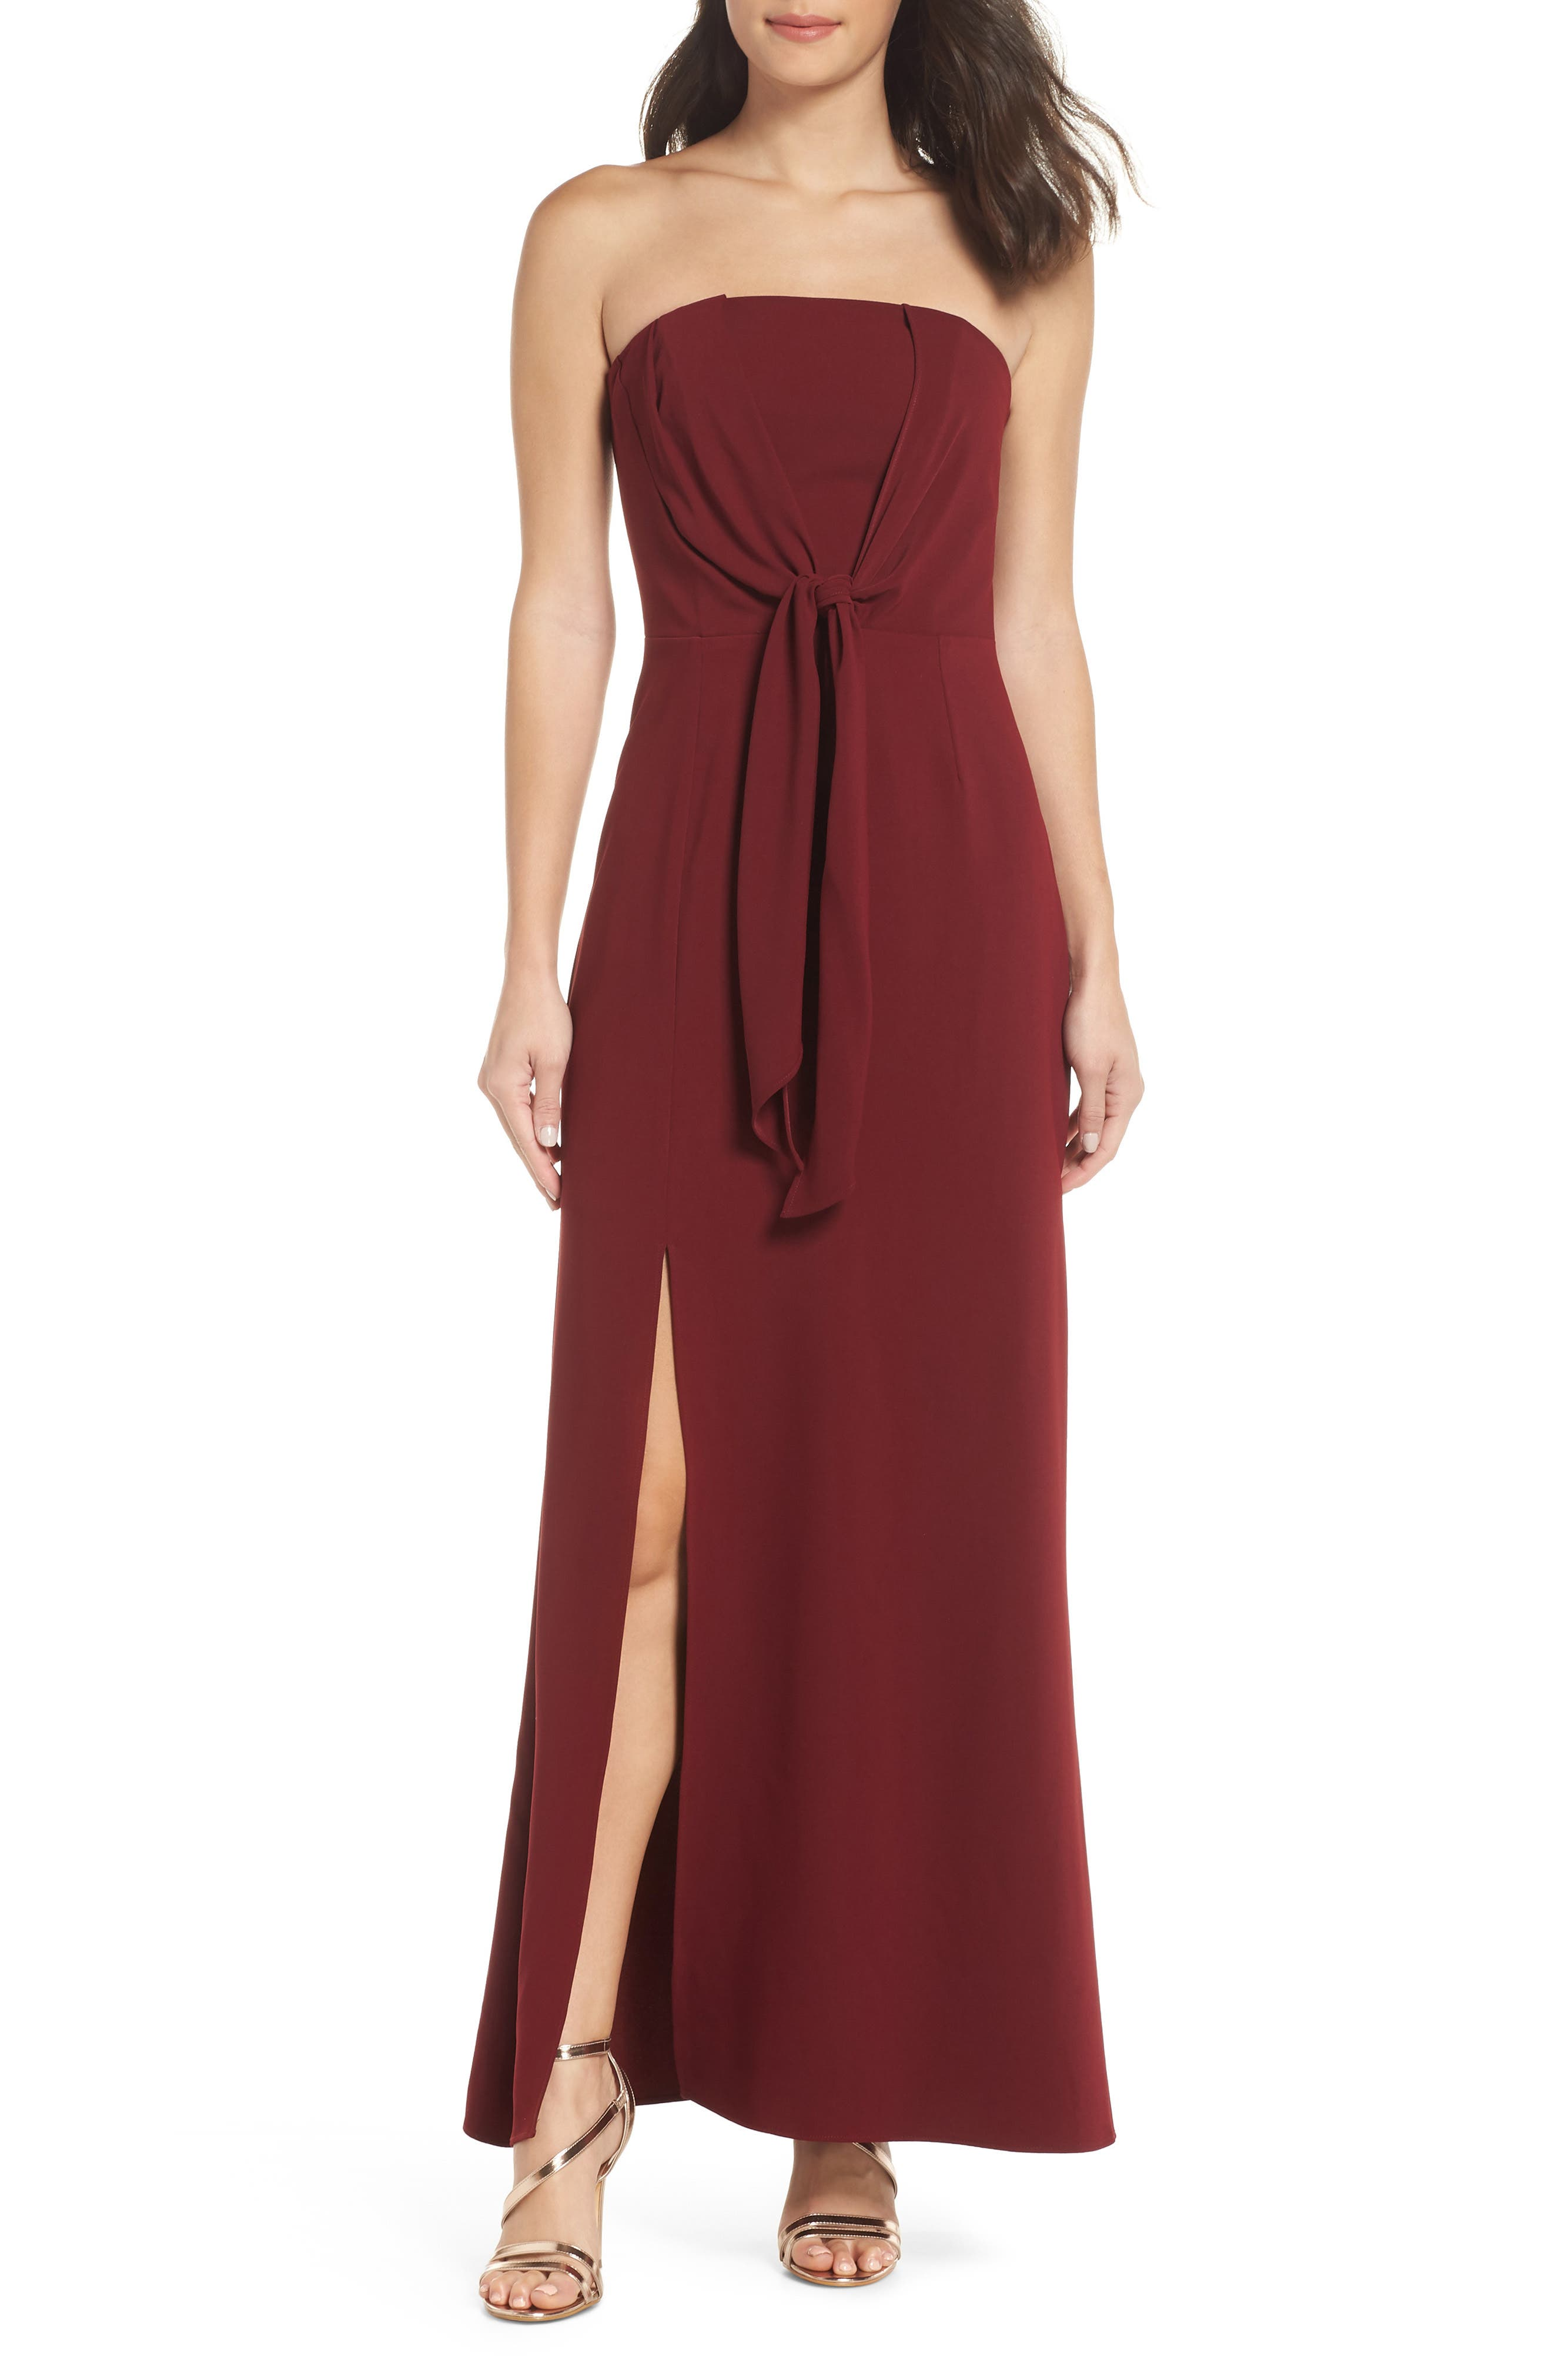 HARLYN Strapless Knot Gown in Burgundy